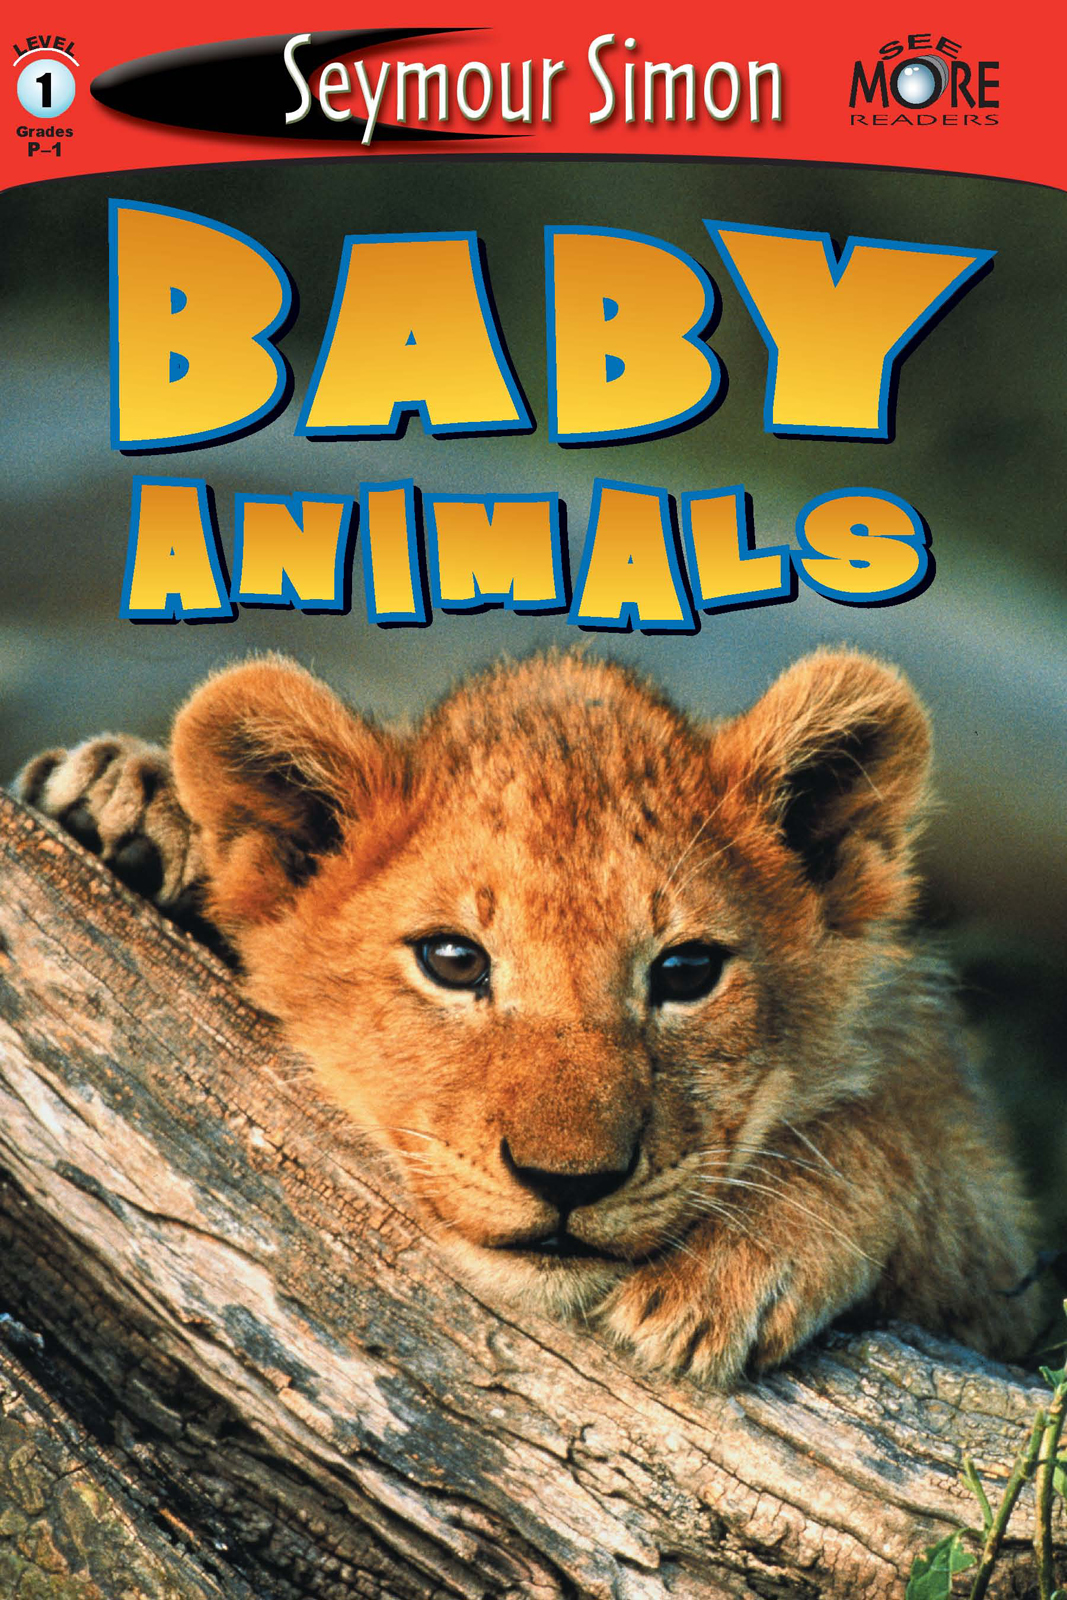 Baby Animals See More Readers Level 1